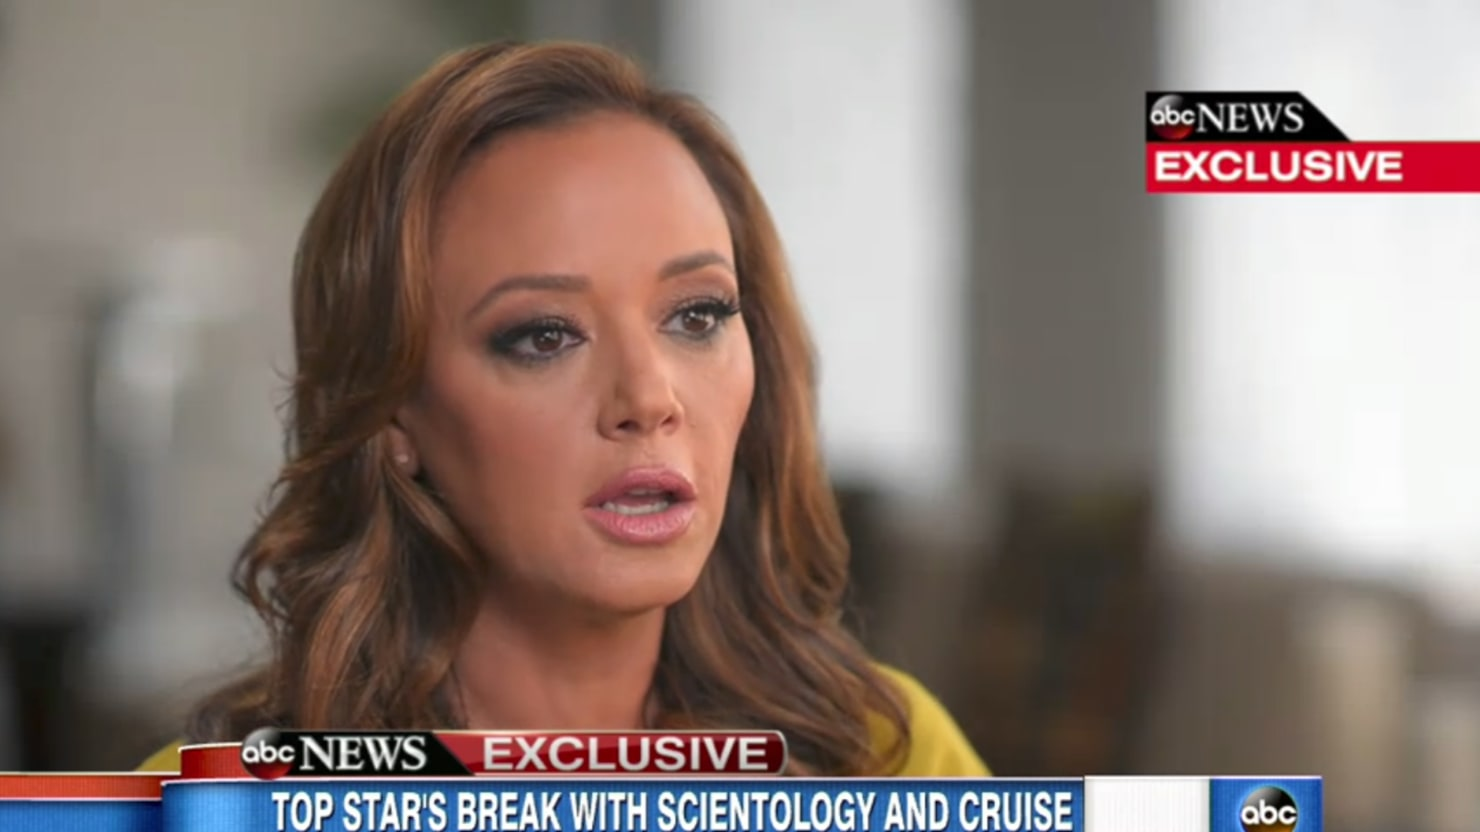 Leah Remini Slams Tom Cruise and Scientology: 'This is Some Crazy Sh-t'